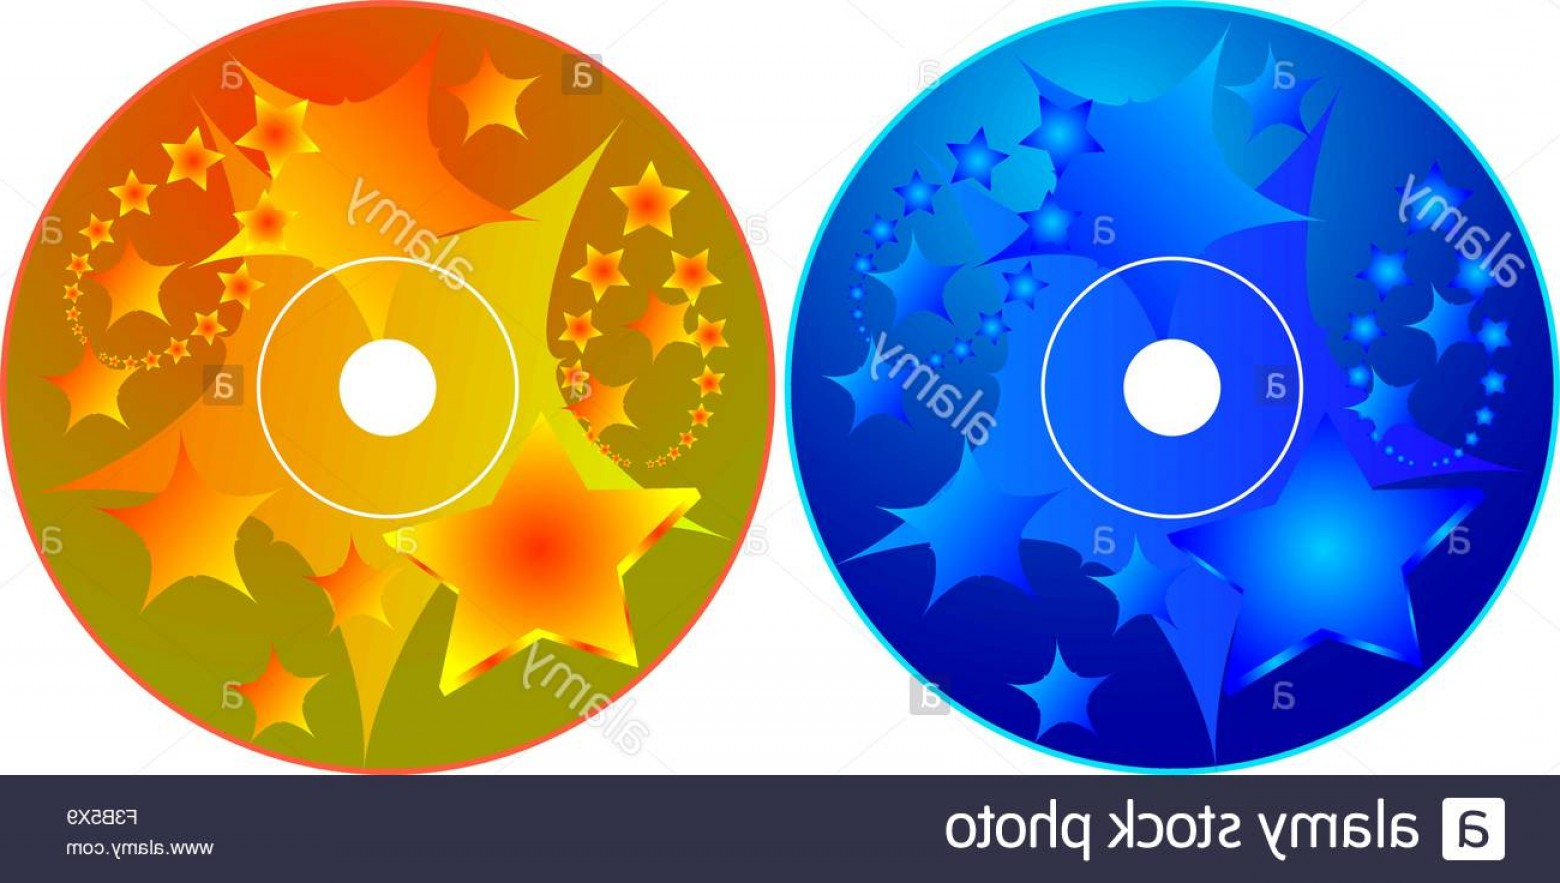 CD Label Template Vector: Stock Photo Cd Dvd Label Design Template Vector Art